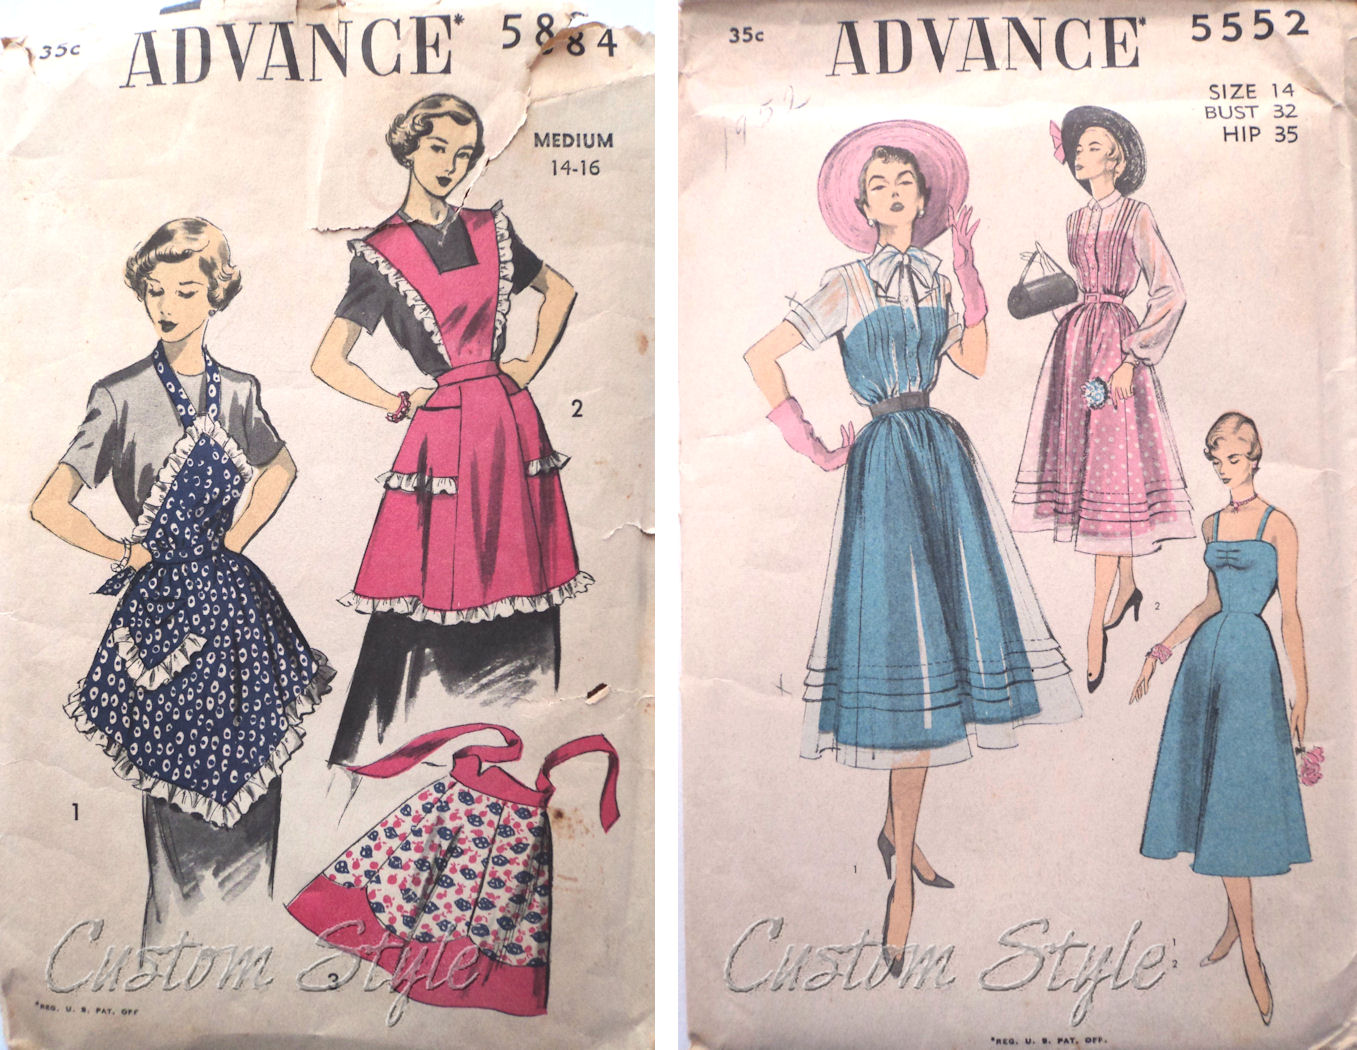 advance 5884 apron pattern in my collection of aprons version 1 is my